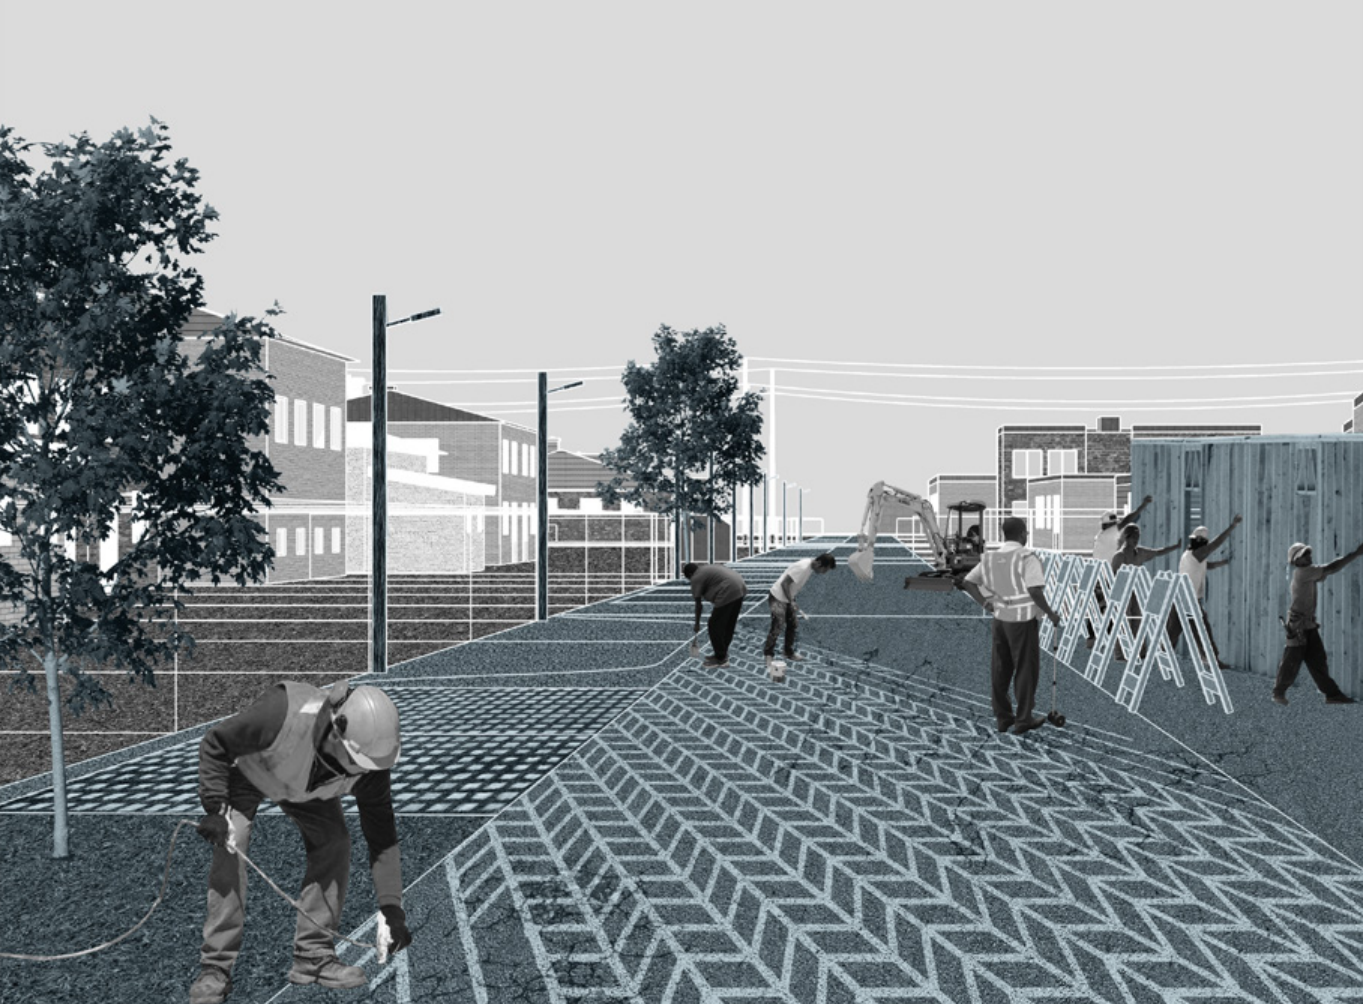 thesis image - workers on street